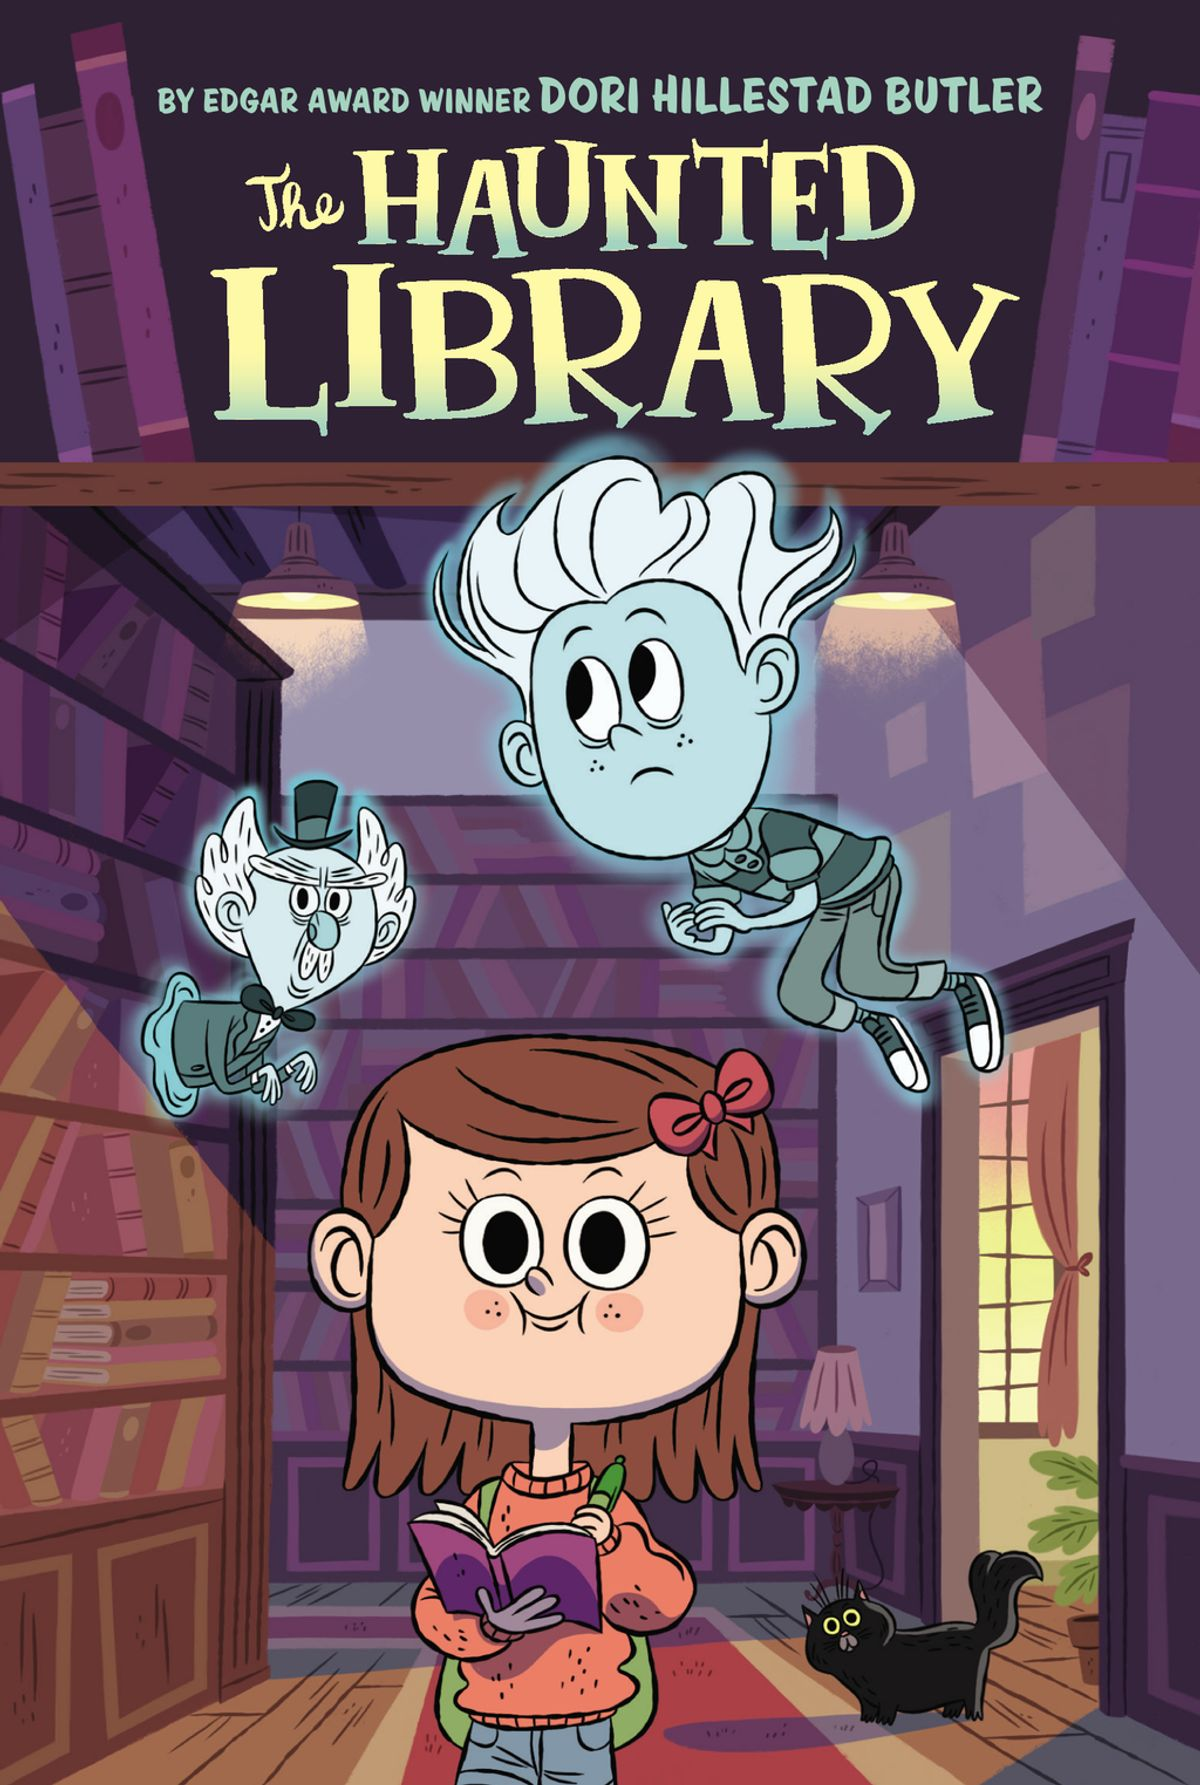 The Haunted Library book cover